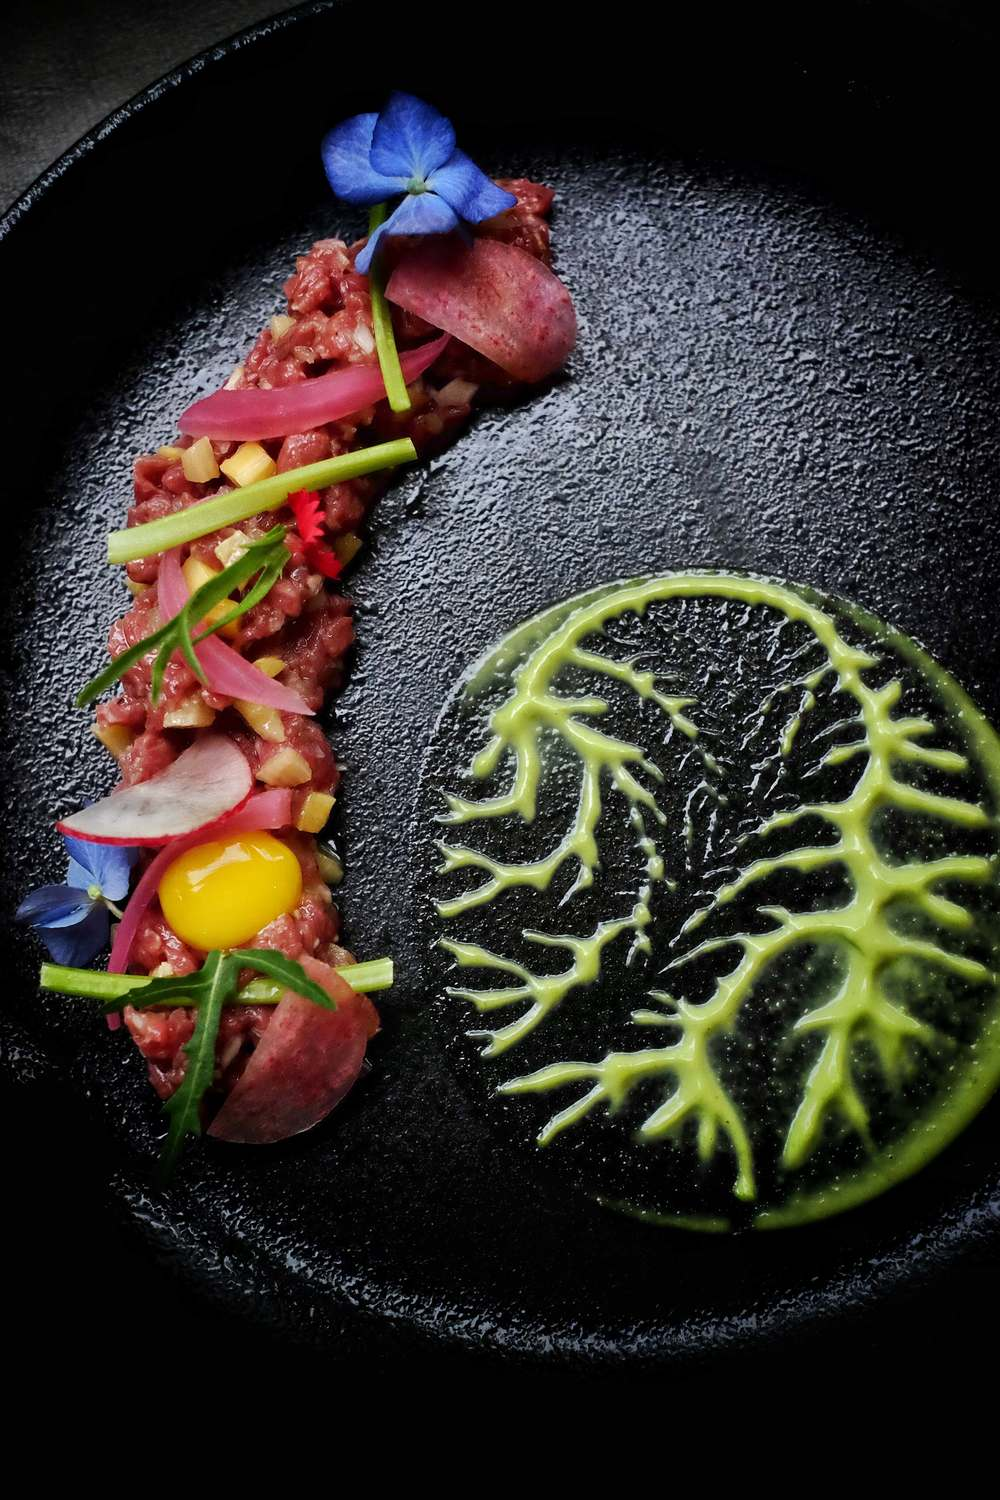 Thatsitmag_Light&Salt_Shanghai_Summer Sensations by executive chef Samuel Albert and his team_3.jpg